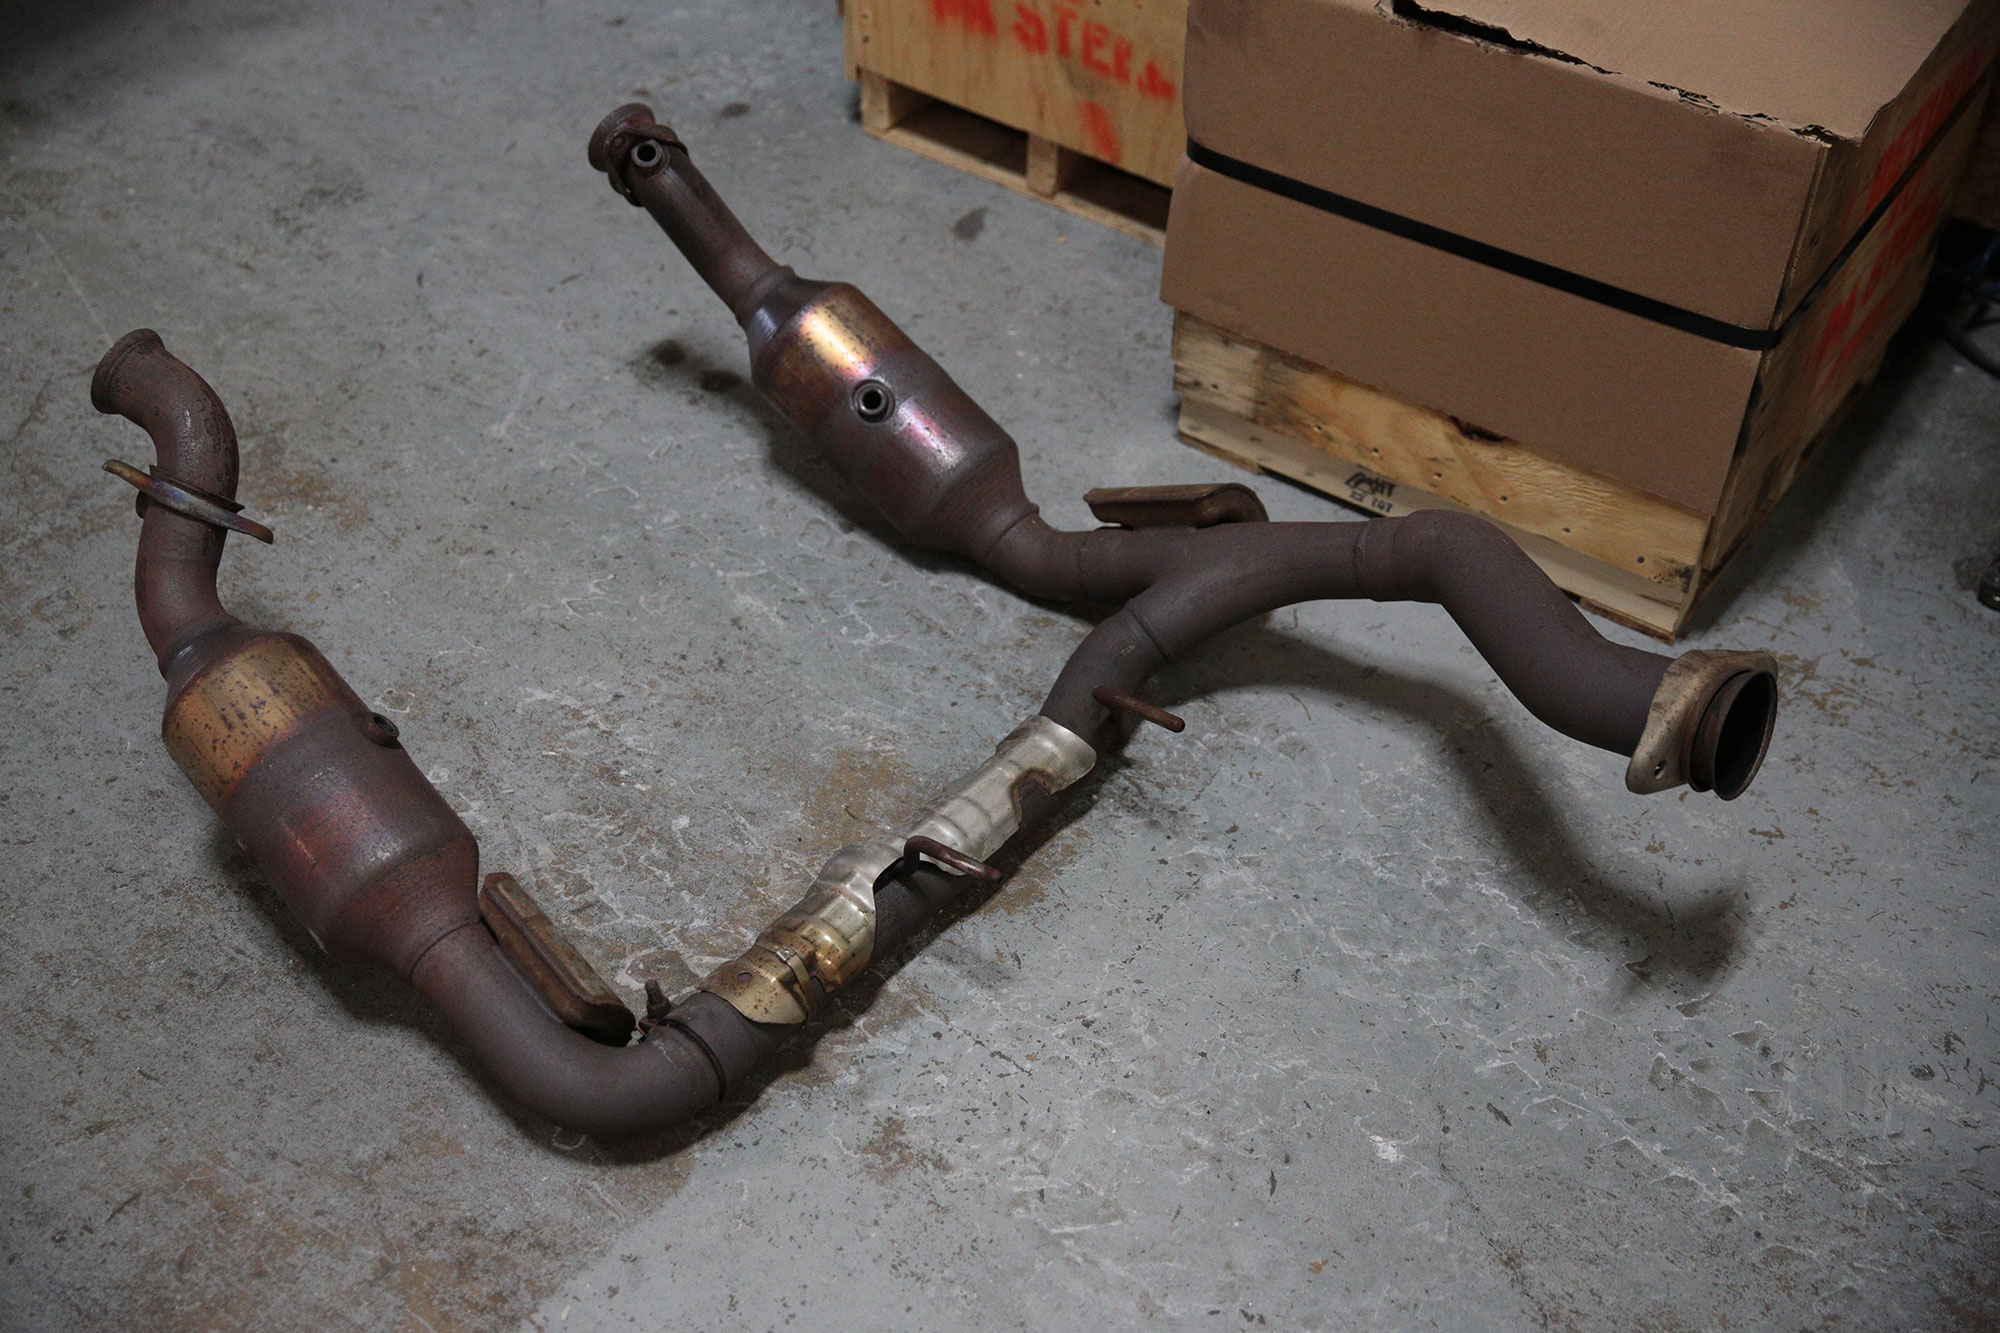 Ford F150 Ecoboost Downpipe Test Fit Cp E